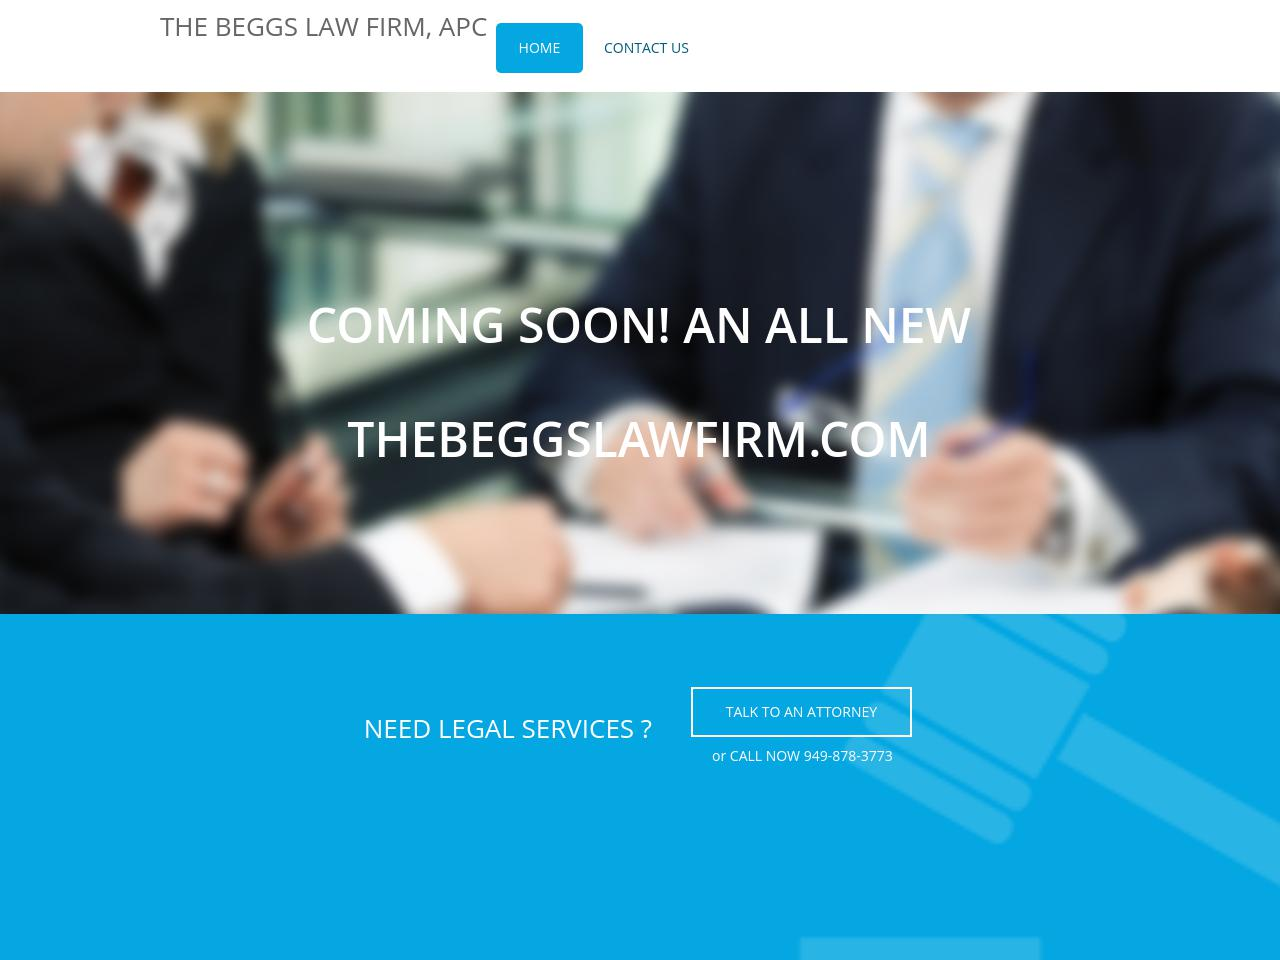 The Beggs Law Firm - Costa Mesa CA Lawyers